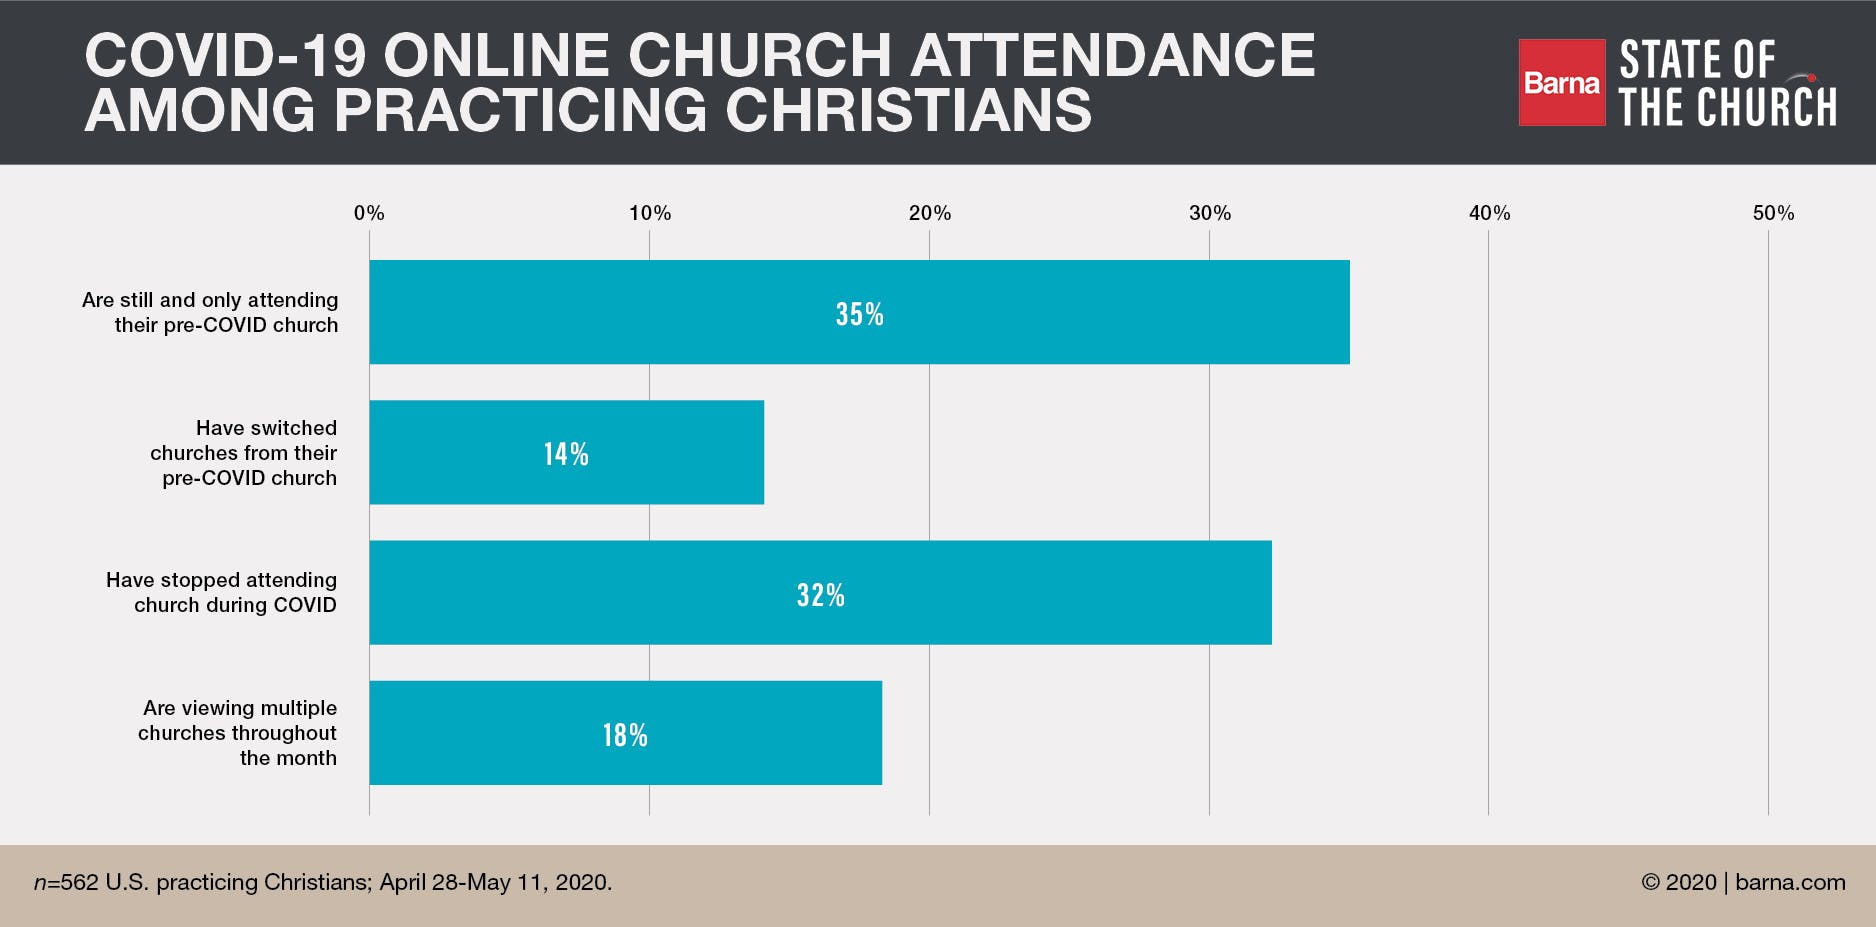 Barna Survey Finds One-Third of All Practicing Christians Haven't Been Attending Church Online During Coronavirus Lockdowns